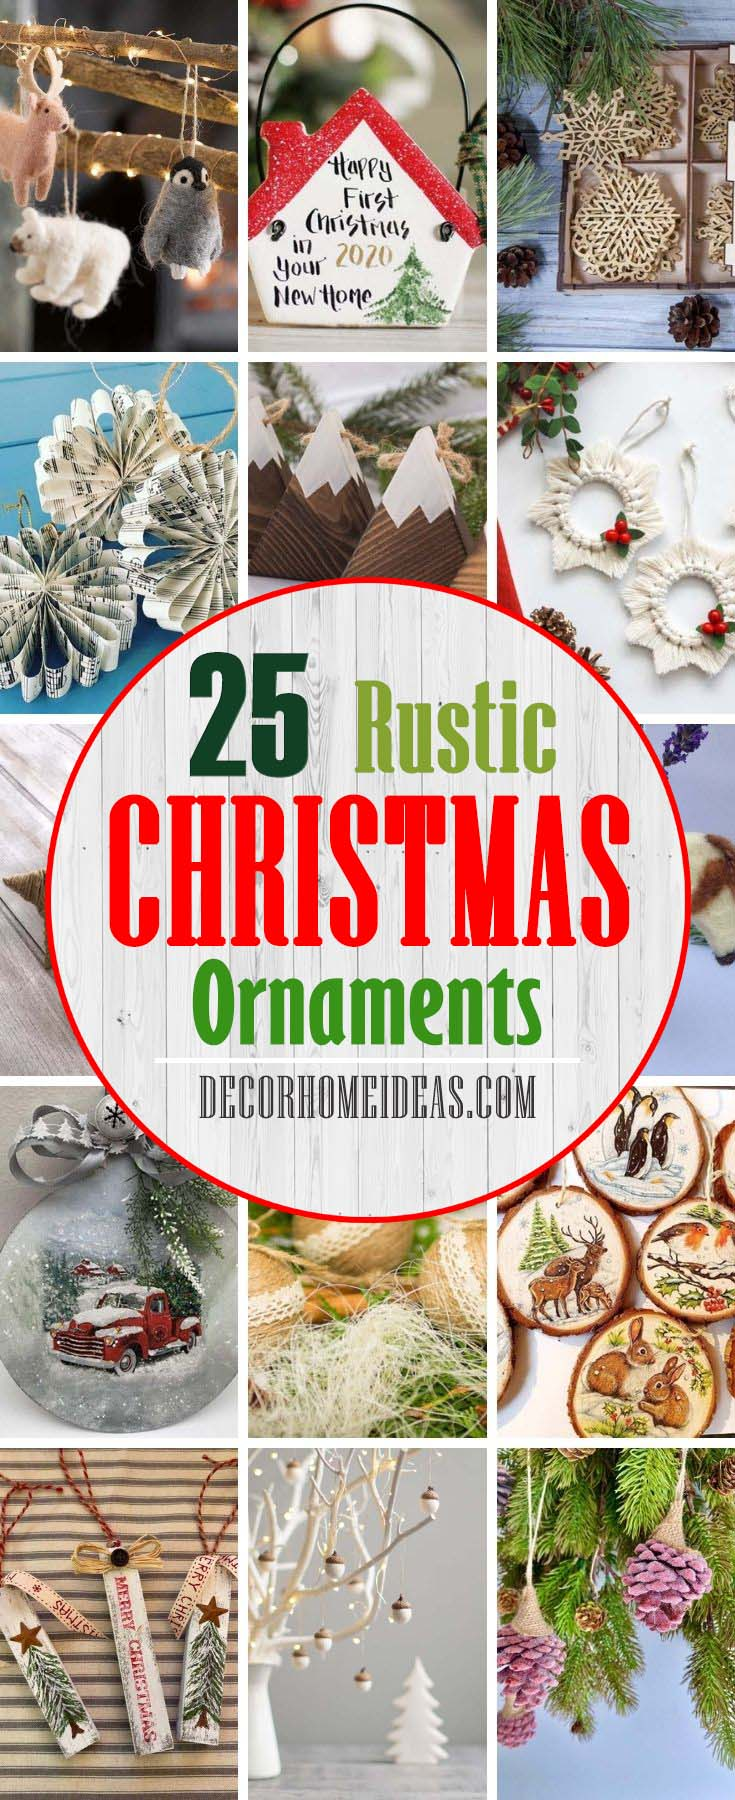 Best Rustic Christmas Ornaments. Do you love that rustic, country look, and want to add a bit of comfy, warmth to your Christmas decorating this year? These adorable Christmas ornaments will make your home cozy and warm. #decorhomeideas